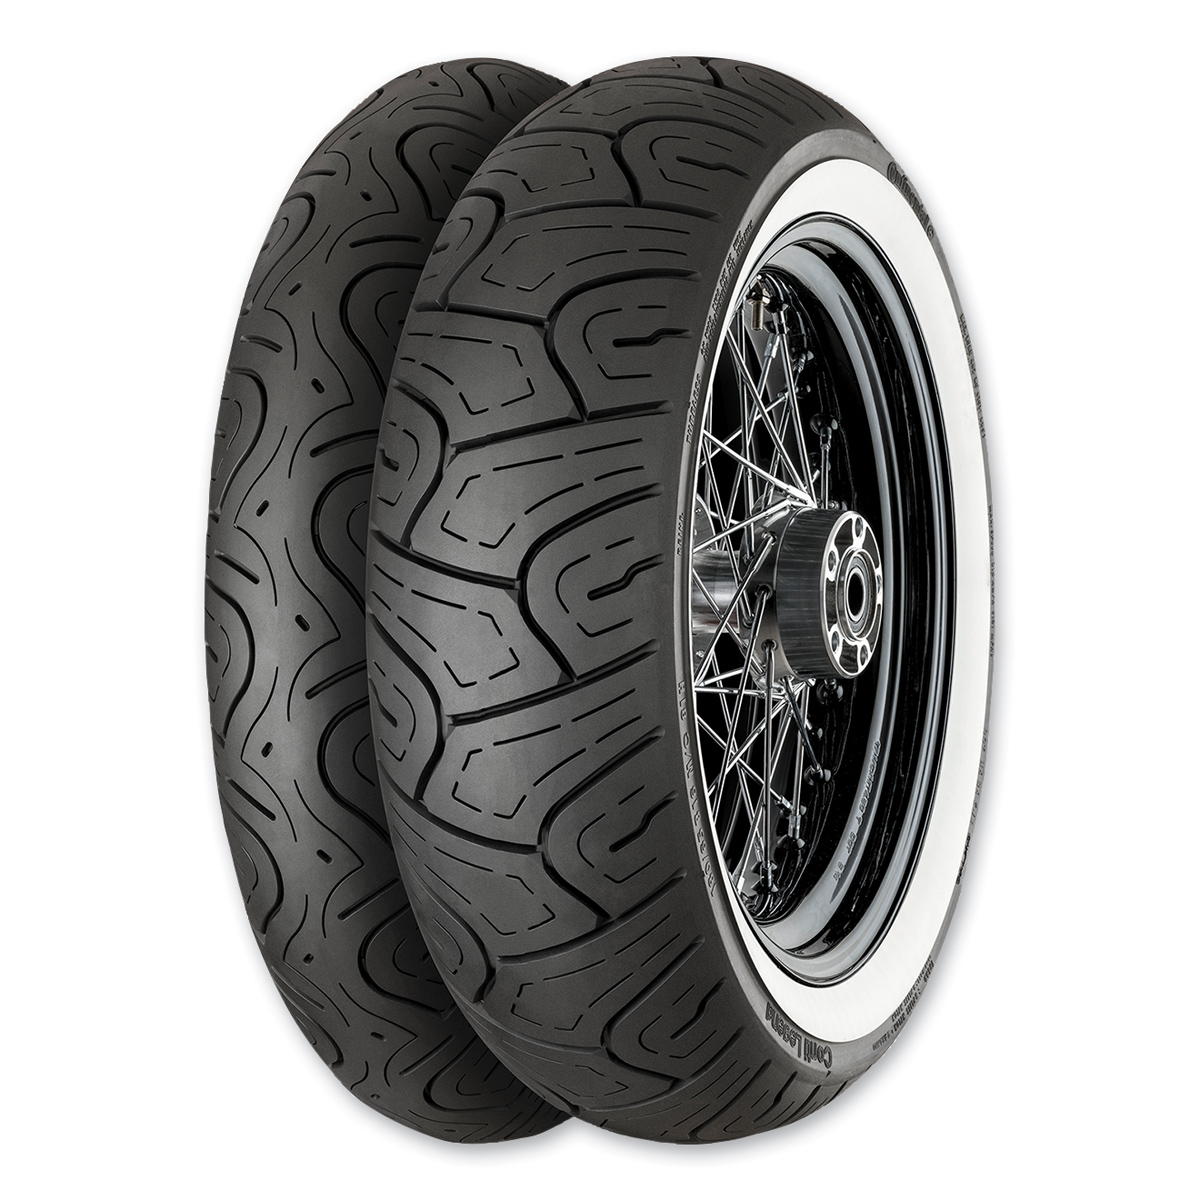 Continental Legend 130/80-17 WWW Front Tire